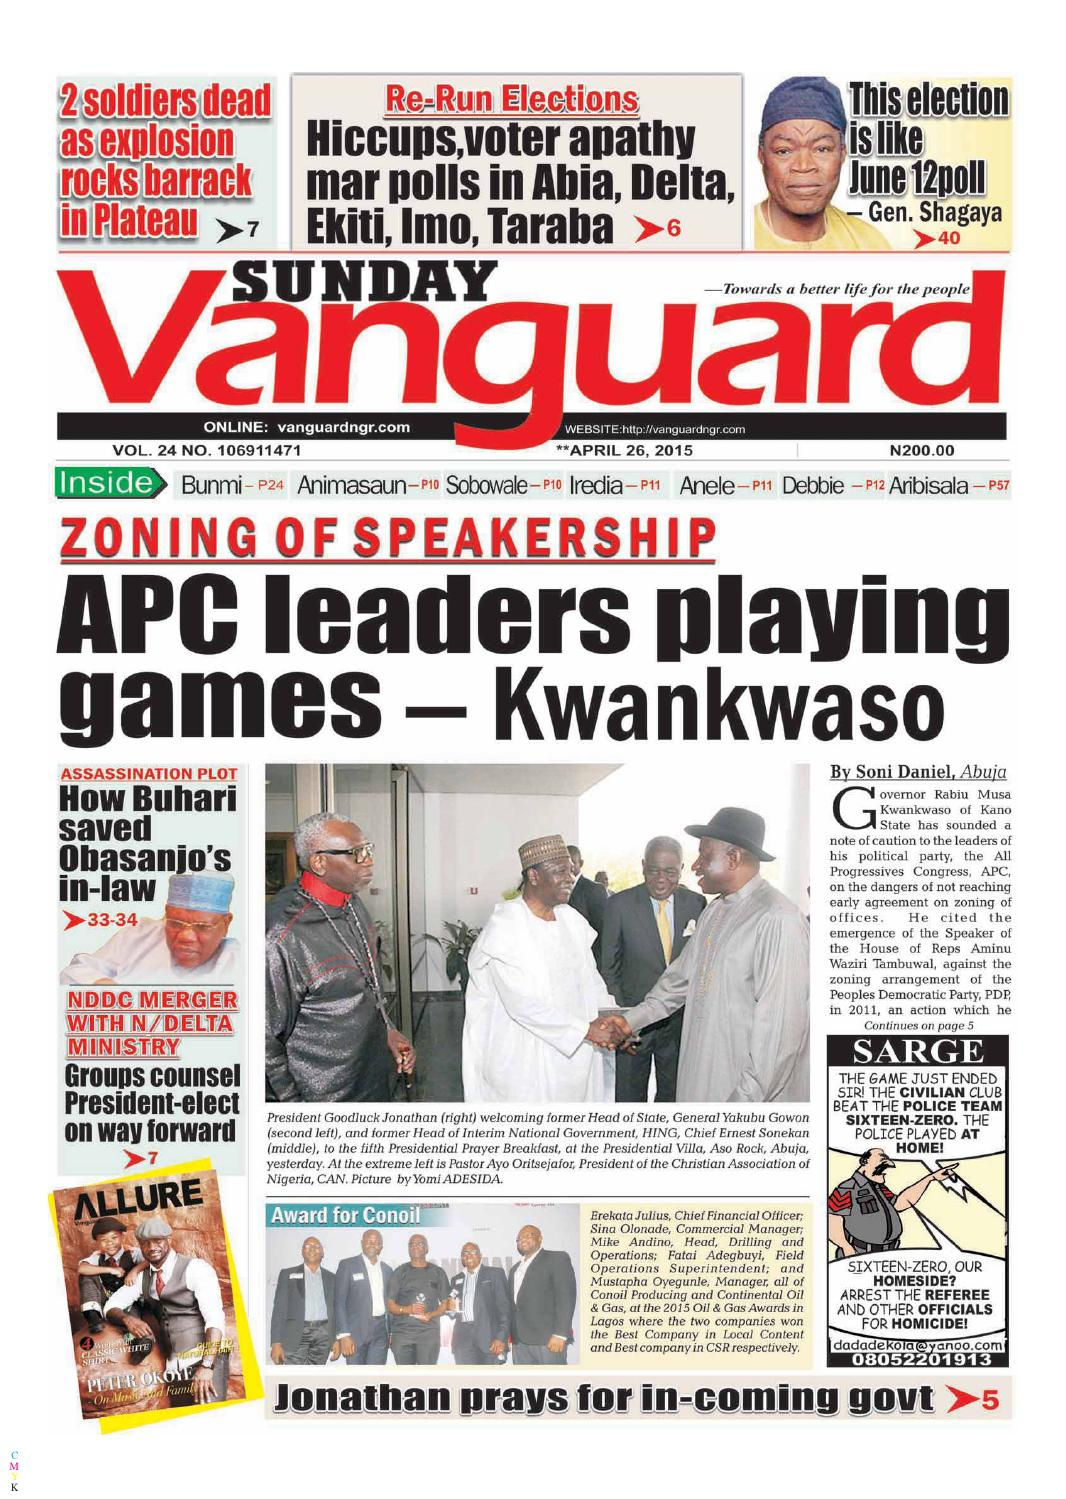 apc leaders playing games - kwankwaso by vanguard media limited